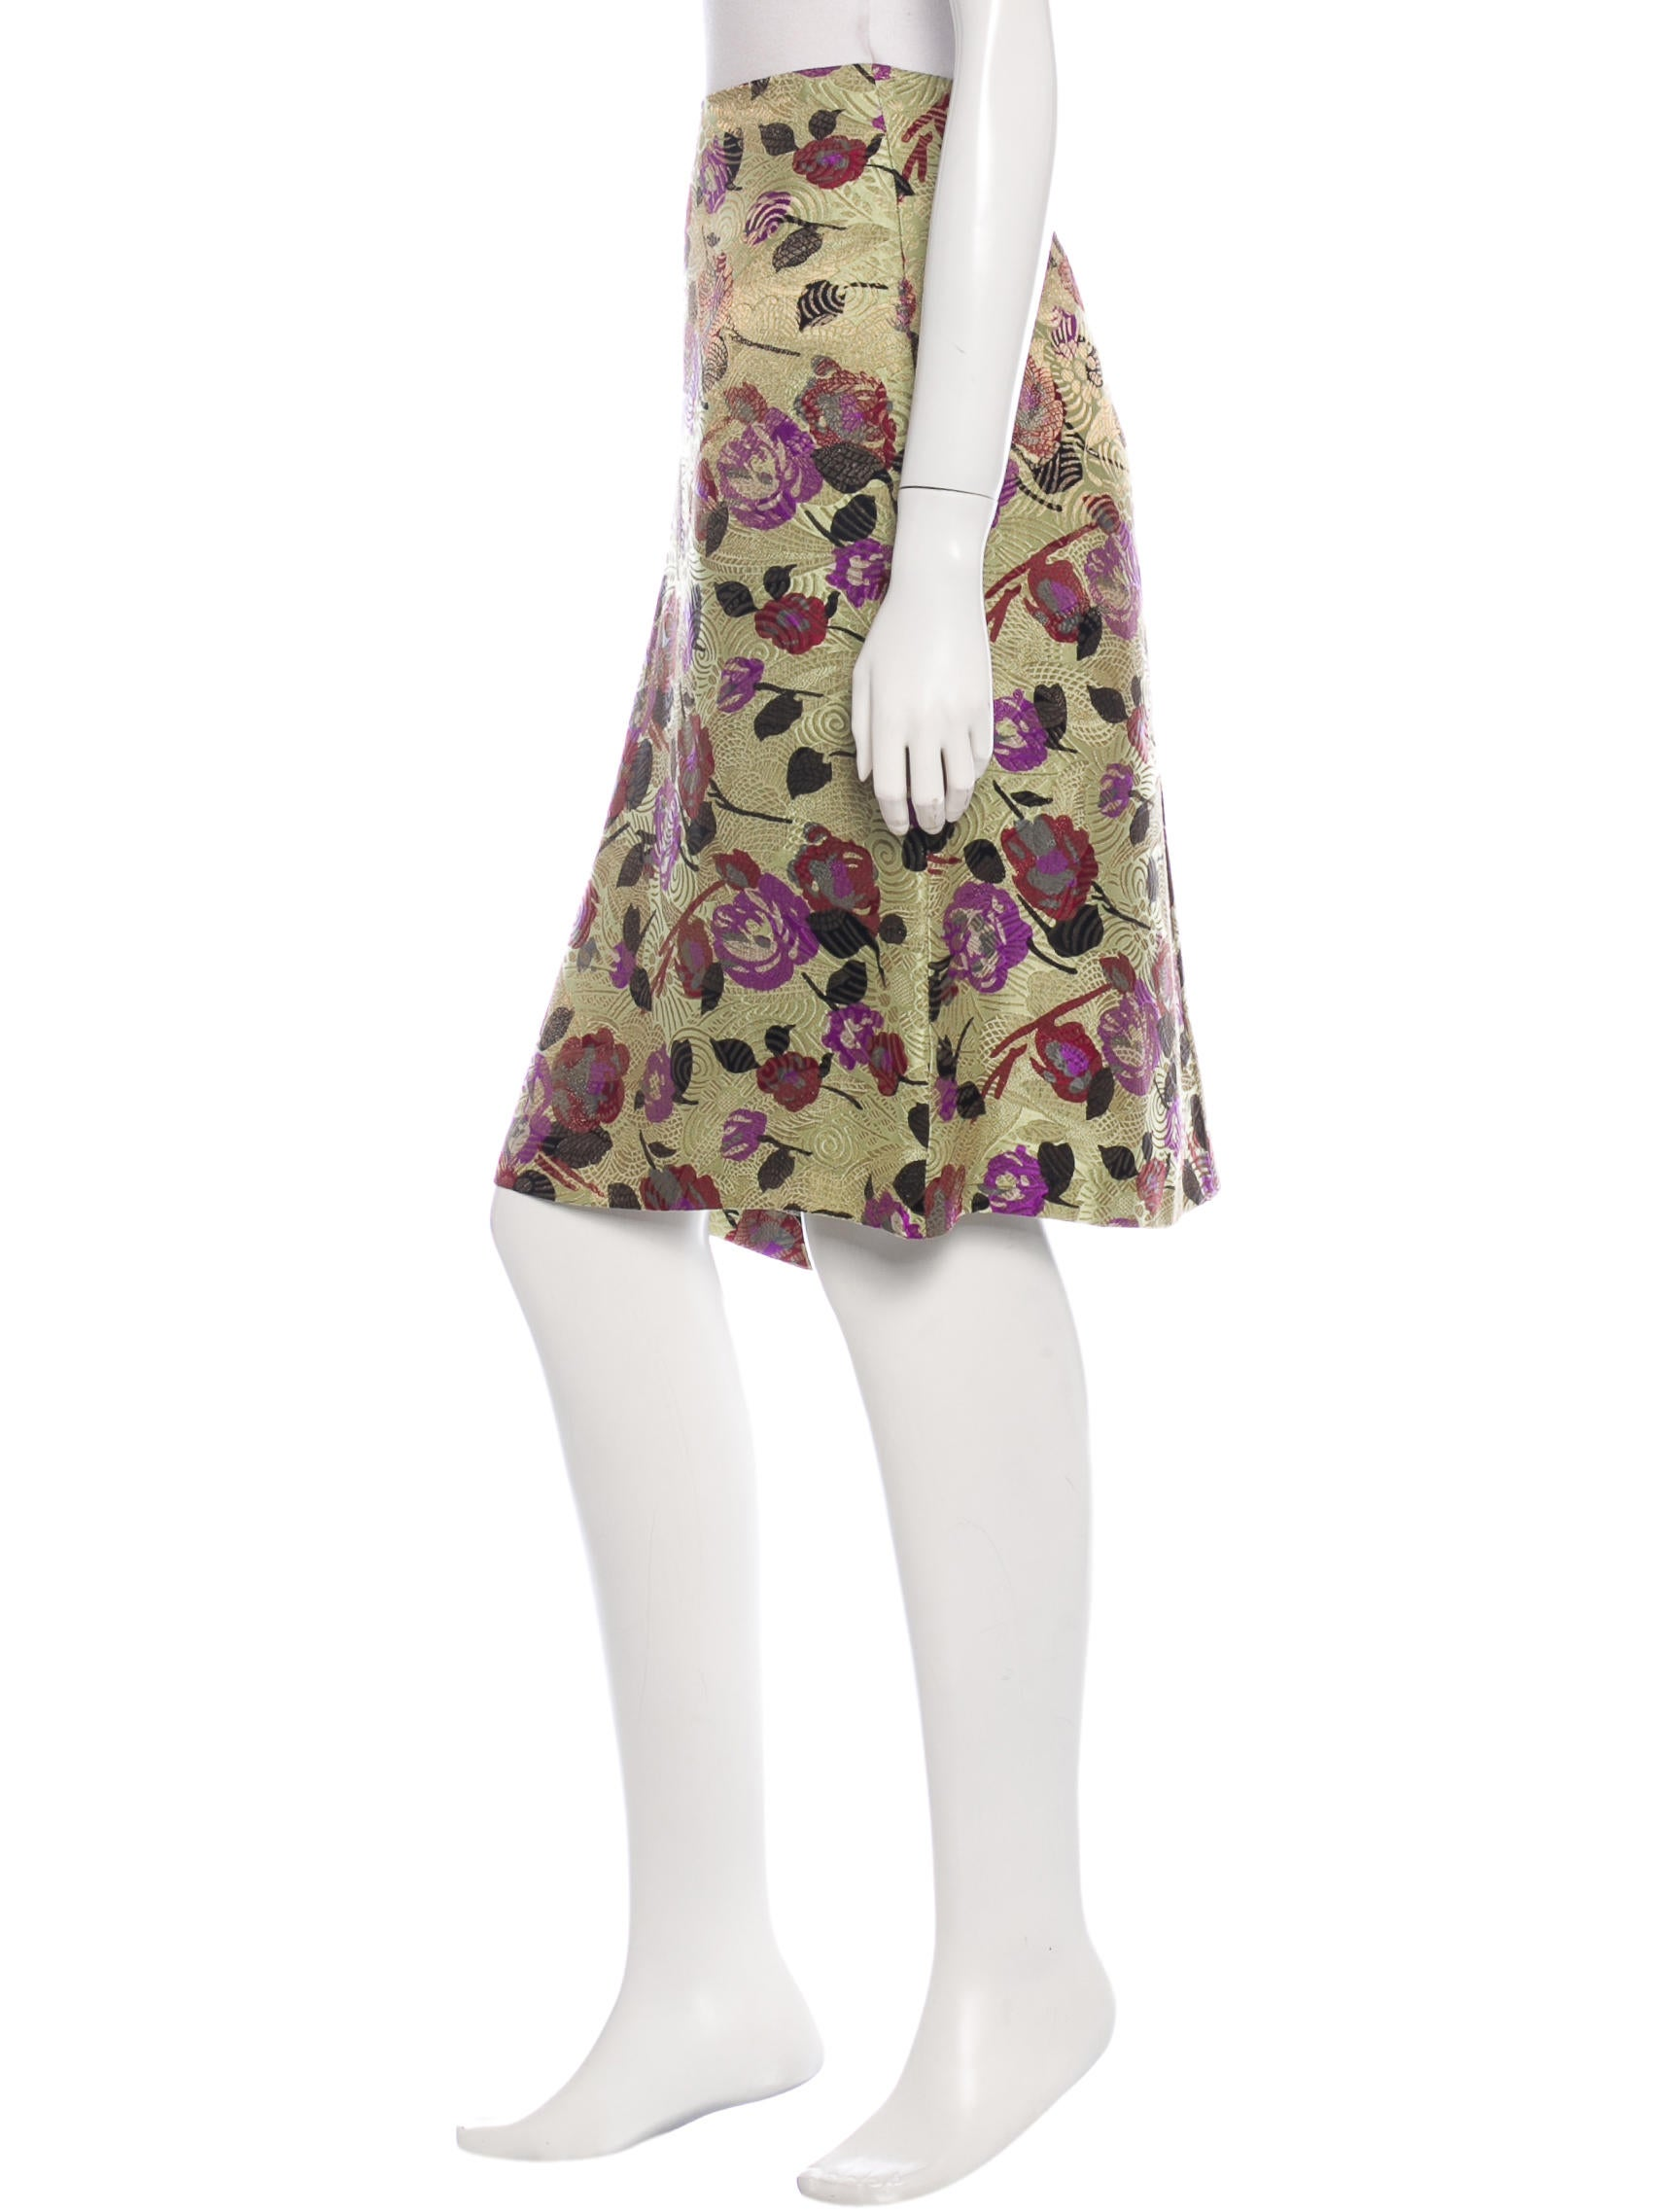 dries noten floral knee length skirt clothing